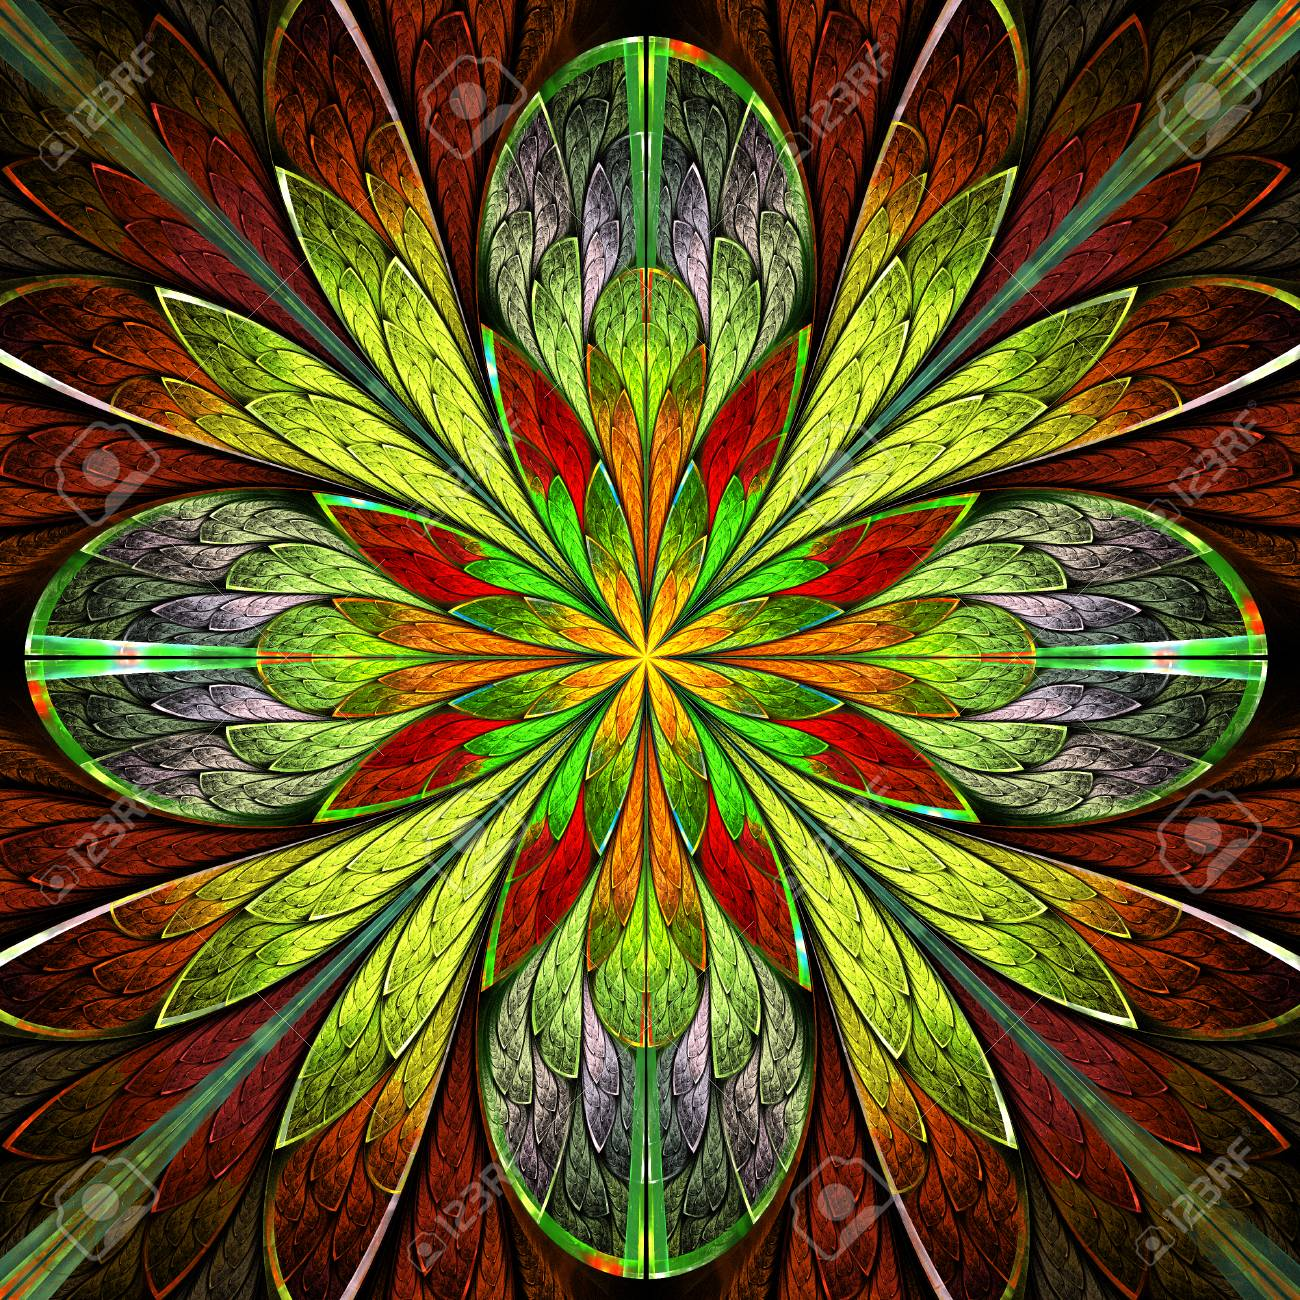 Multicolored Symmetrical Fractal Flower In Stained Glass Window Stock Photo Picture And Royalty Free Image Image 74744409